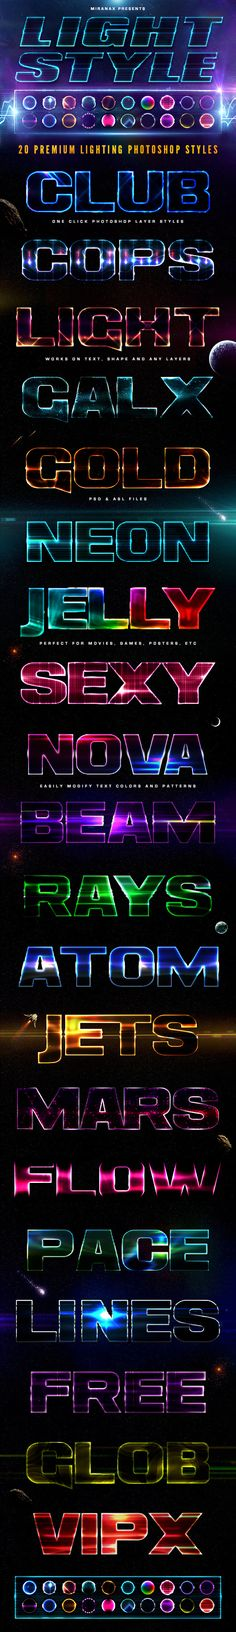 20 Lighting PSD Text Effects — Layered PSD #steel #galaxy • Available here → https://graphicriver.net/item/20-lighting-psd-text-effects/7592251?ref=pxcr